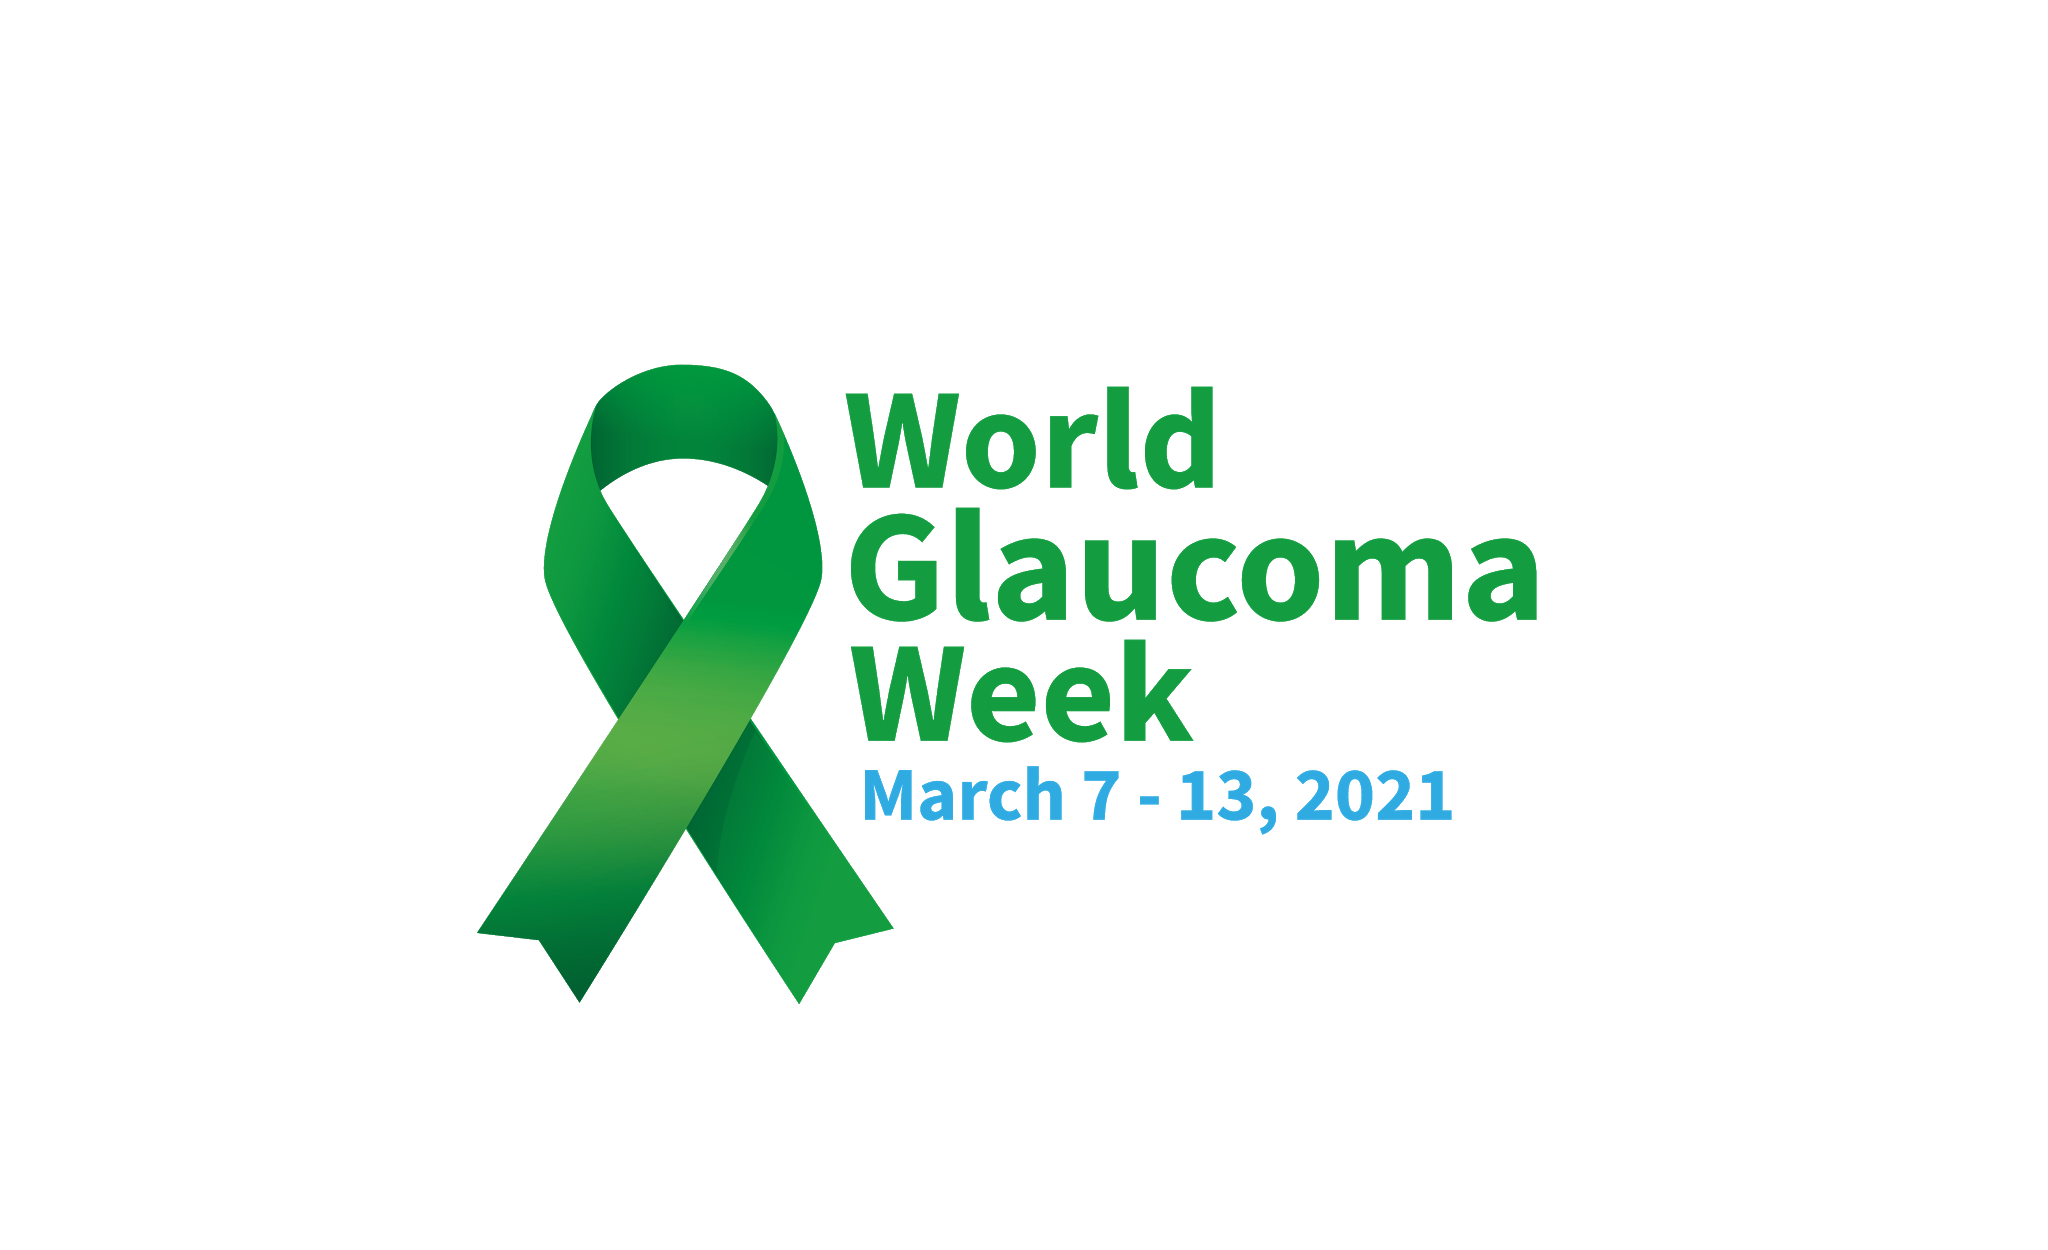 World Glaucoma Week March 7-13, 2021